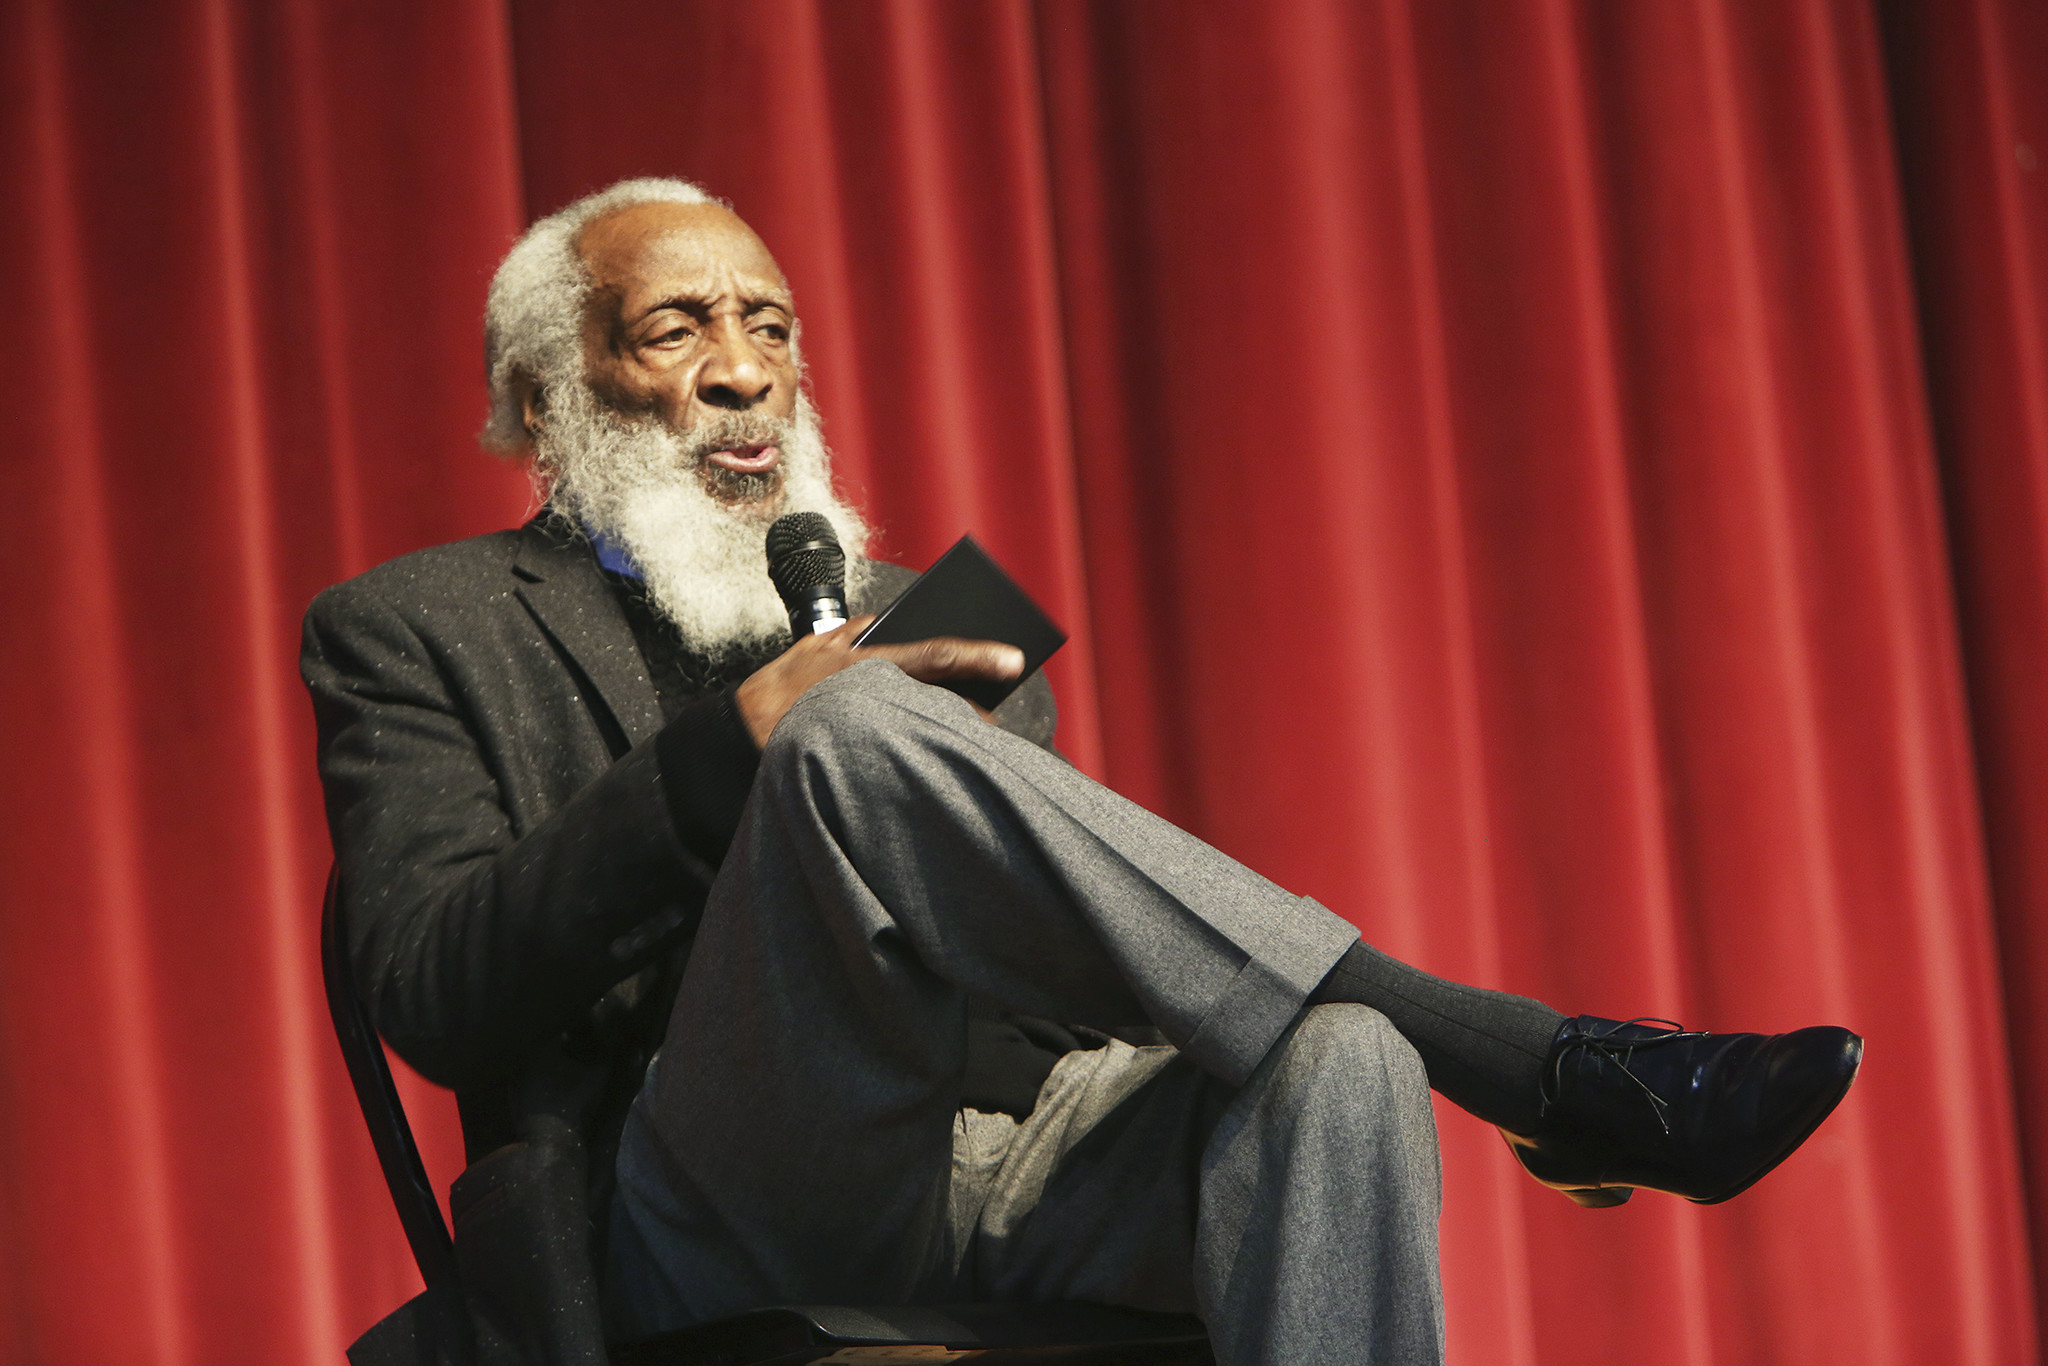 Dick Gregory, the longtime civil rights activist, writer, social critic and comedian, speaks to a crowd attending the MLK Leadership Luncheon at the 16th annual Tampa Bay Black Heritage Festival. (Scott Keeler /Tampa Bay Times via AP)